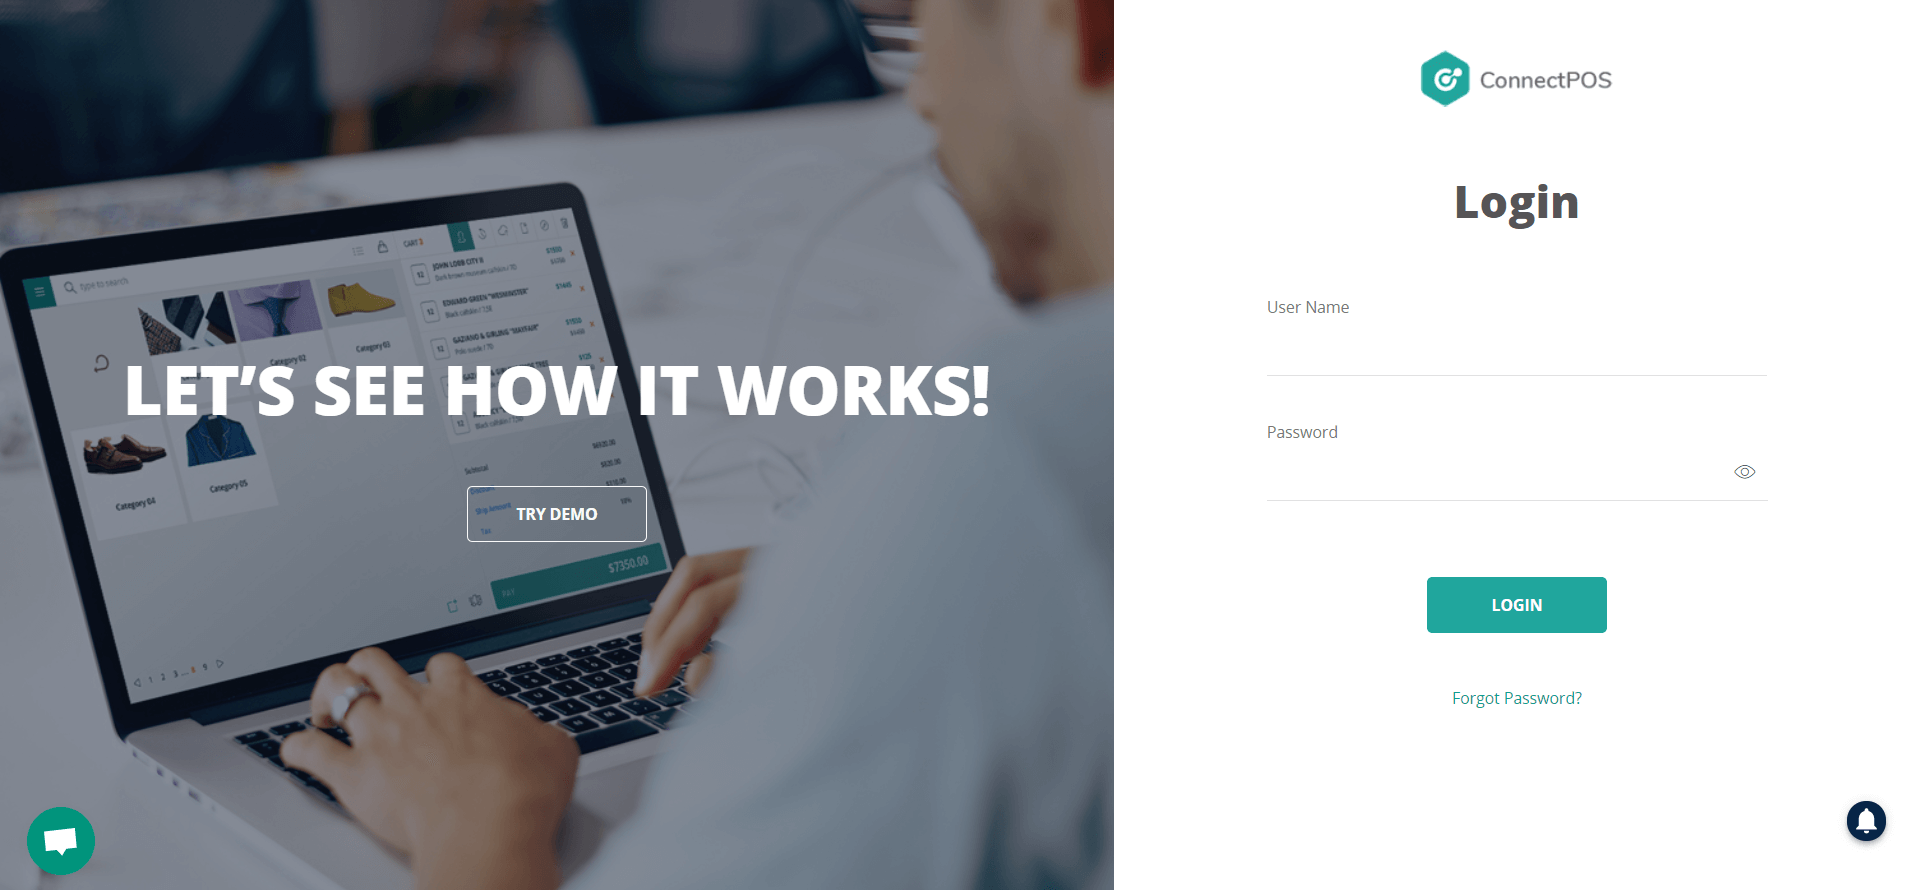 log in to connectpos